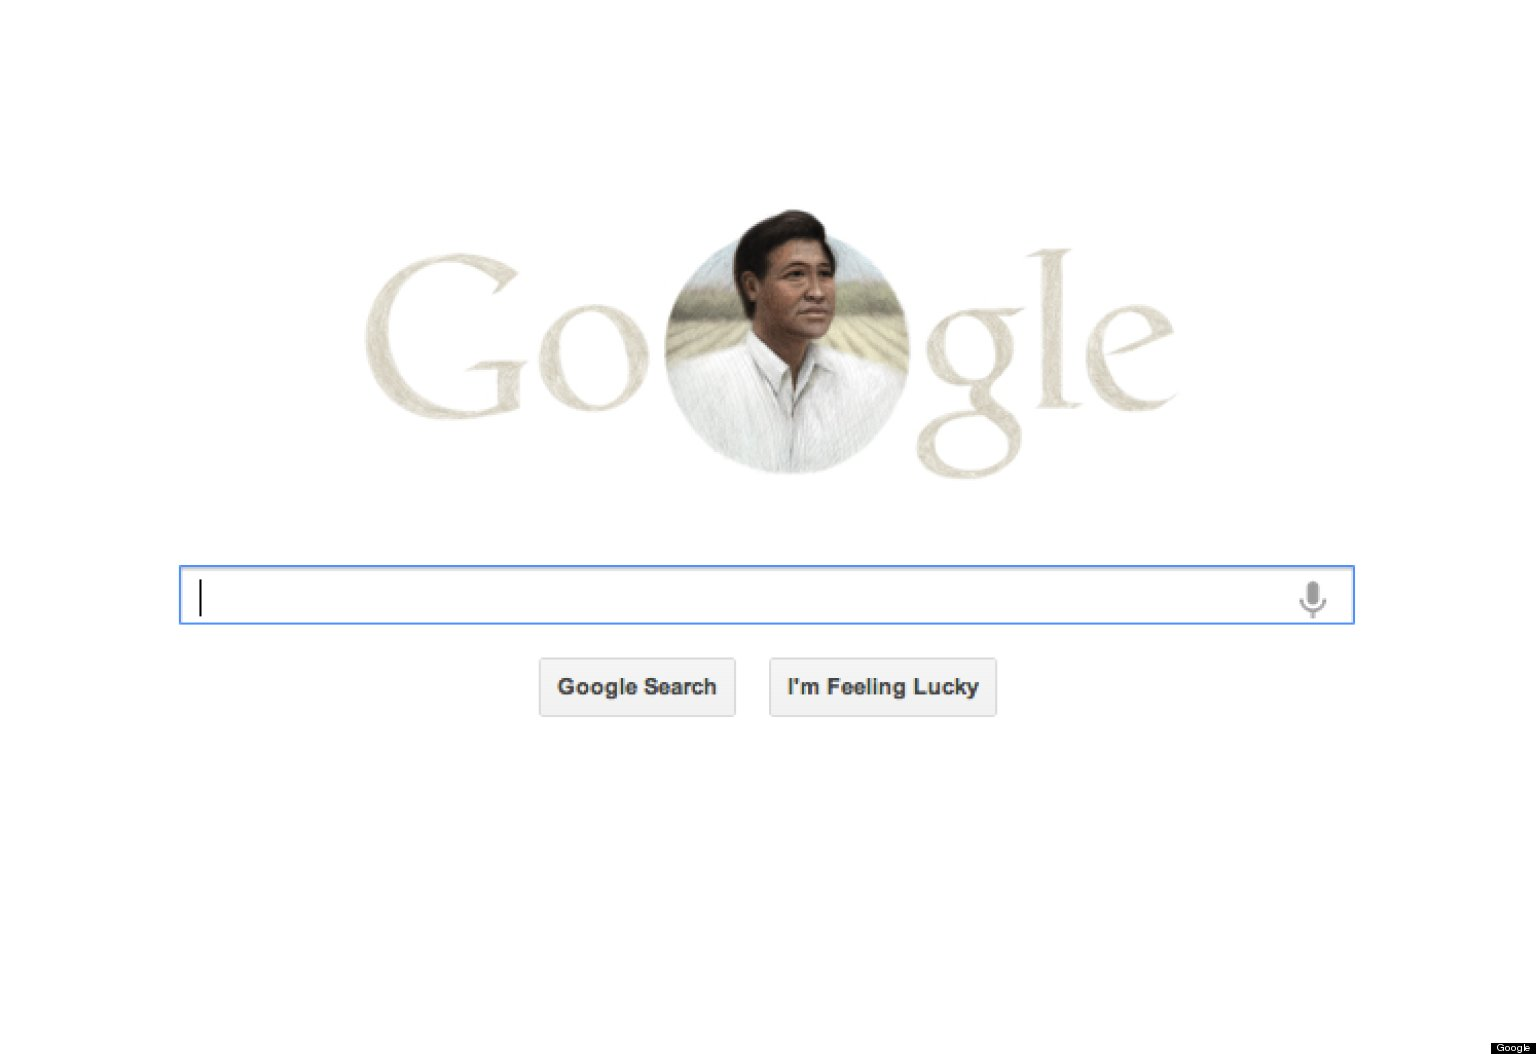 Cesar Chavez Honored With Google Doodle On Easter